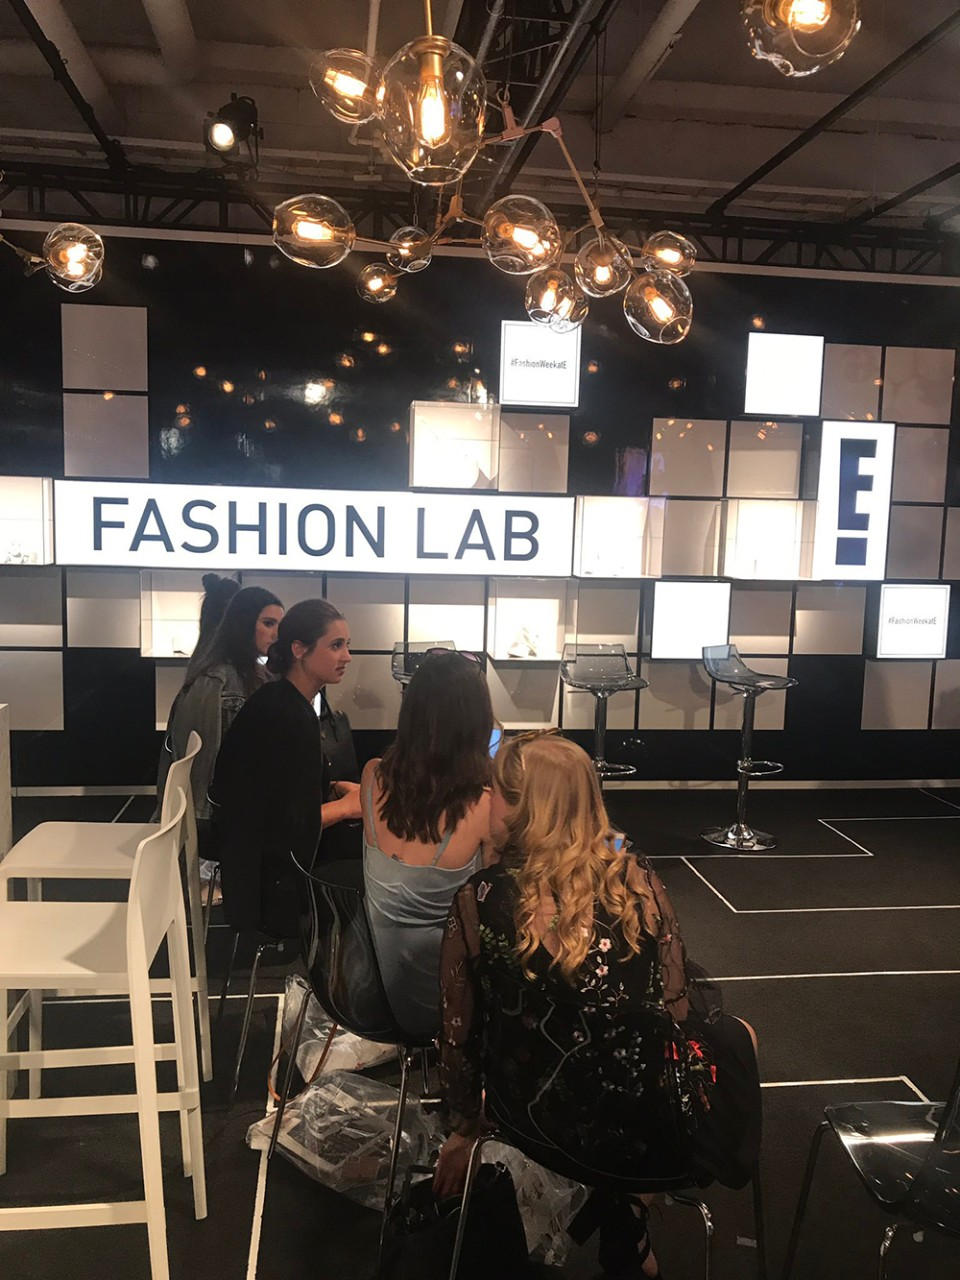 A shot of the E! Fashion Lab, decorated with round lamps and white light-up squares on the wall. This is where the entertainment network covers all things fashion week.